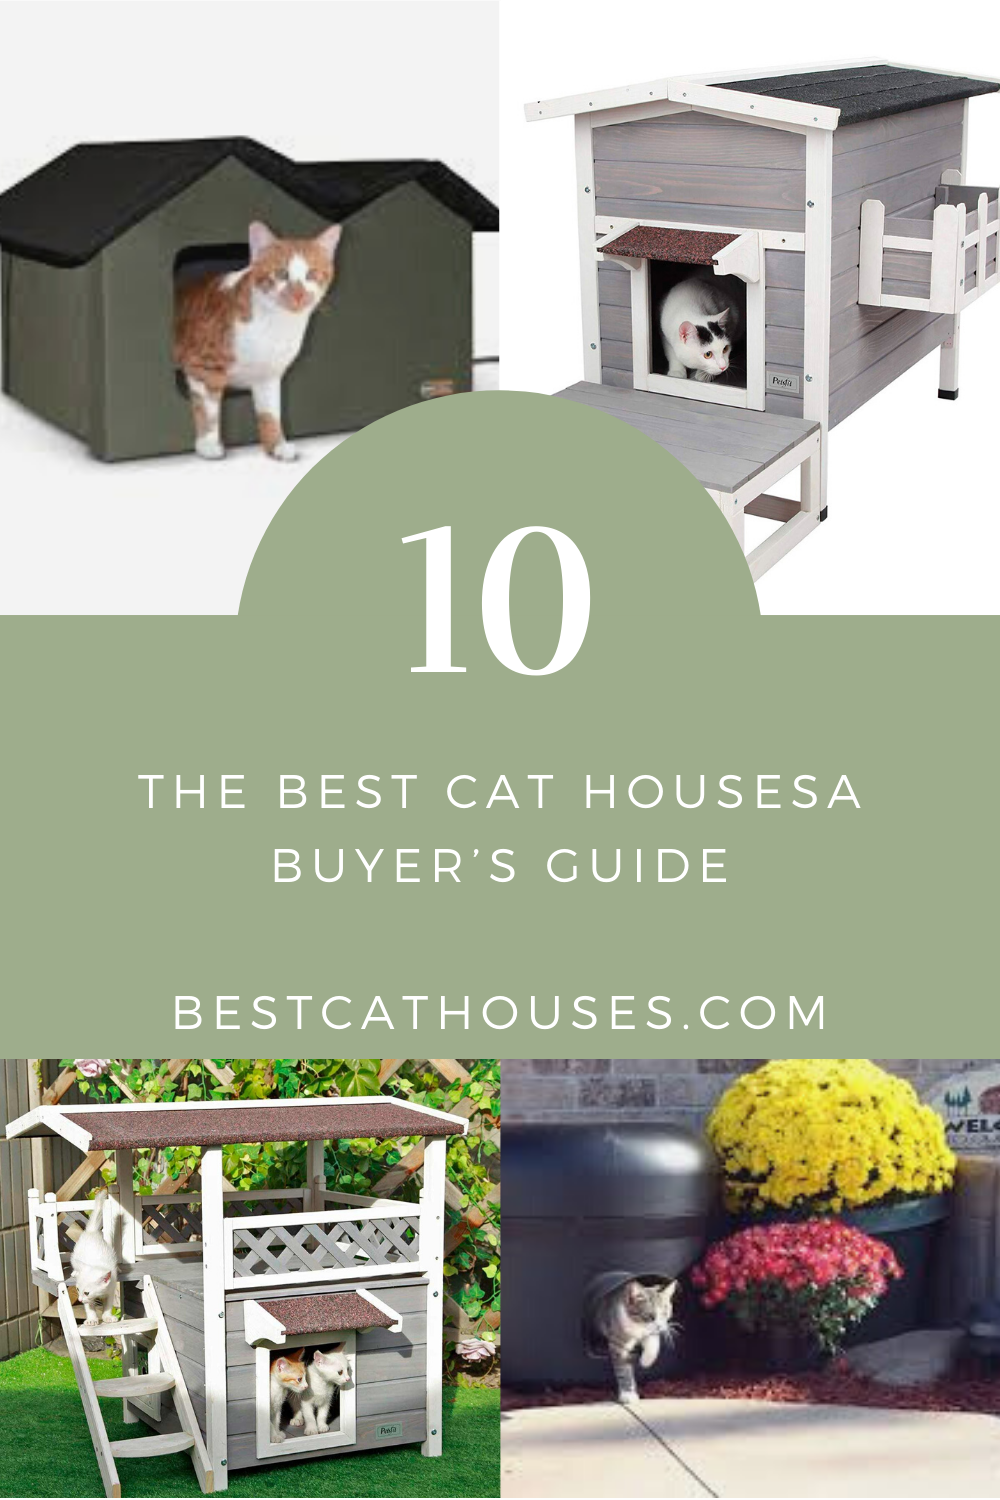 Best Cat Houses A Buyer S Guide Cat House Cool Cats Cats